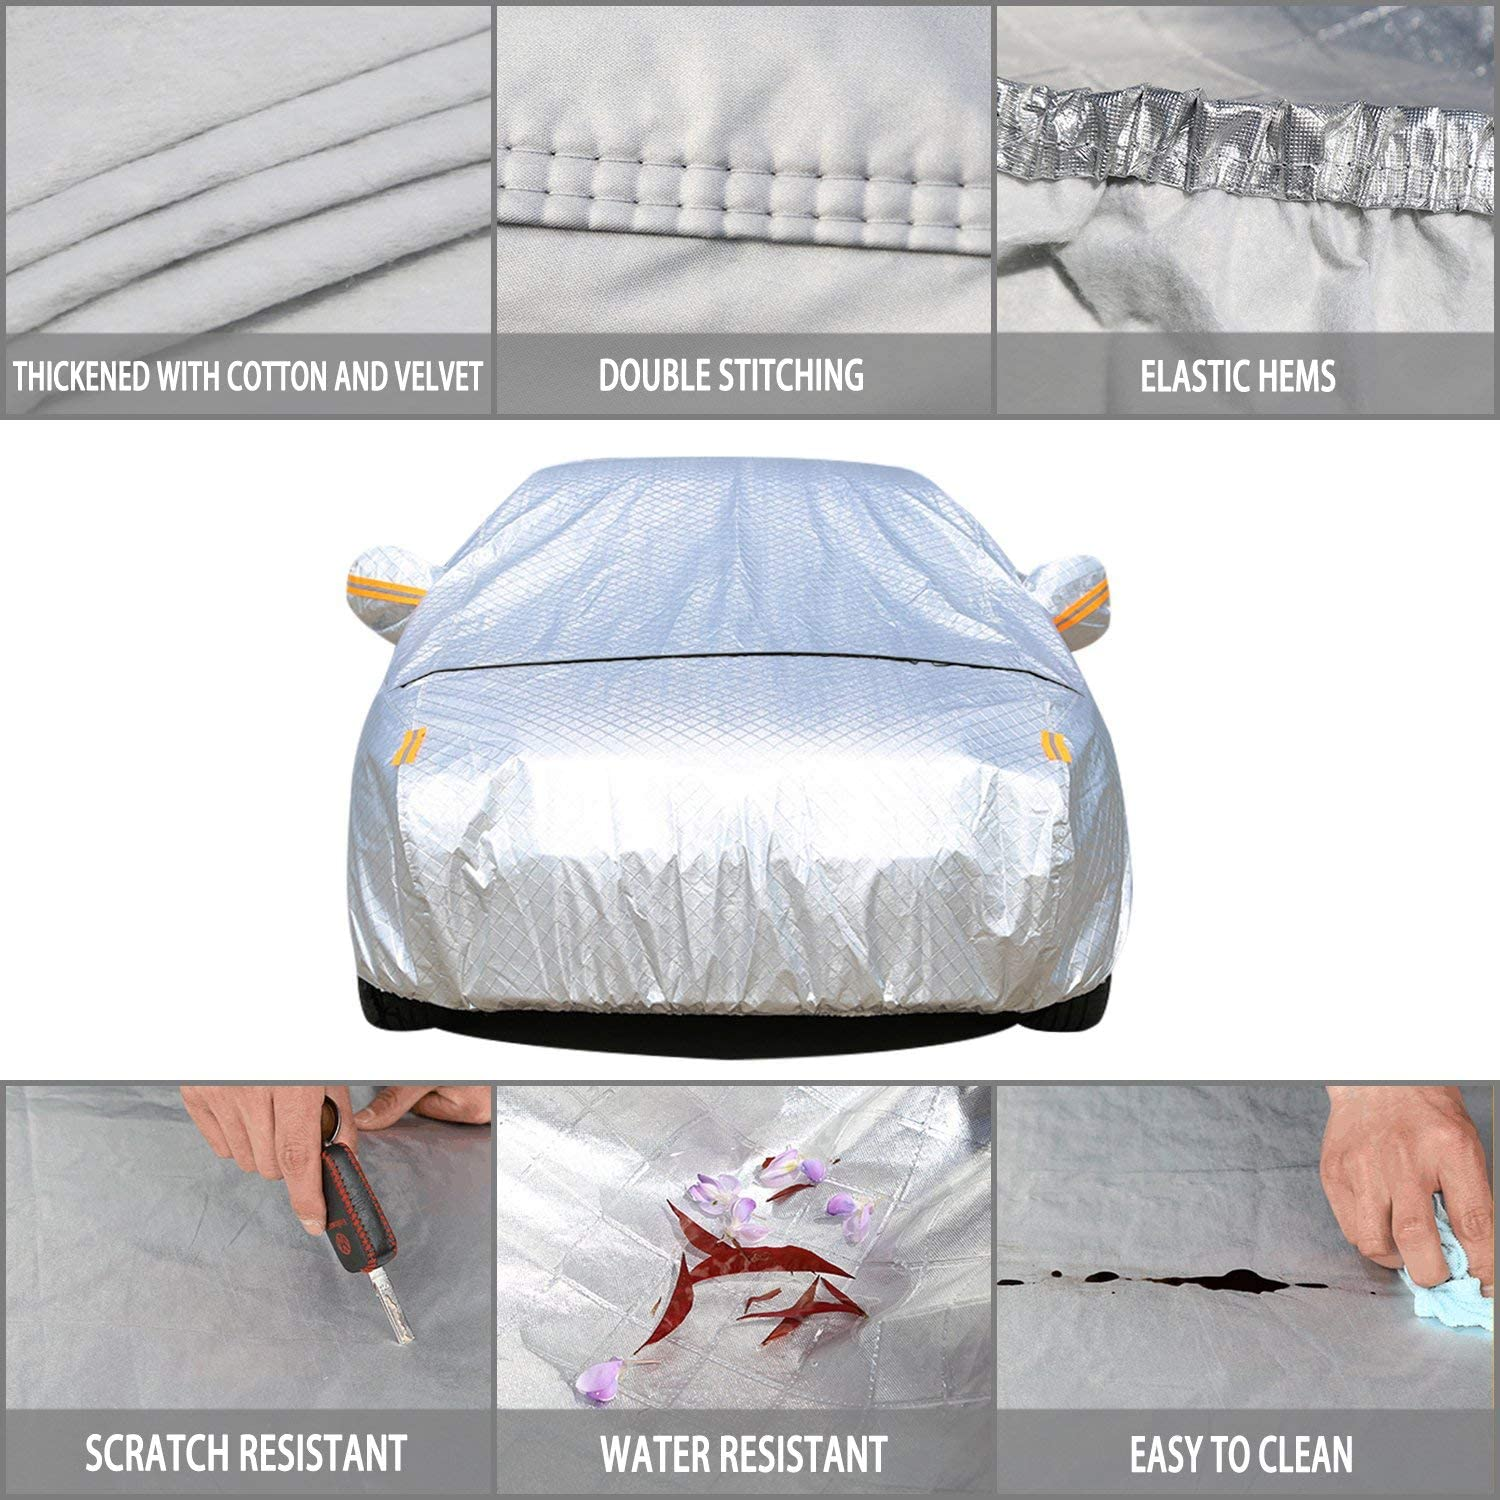 Sedan XXL Car Cover 4.8m 5.4m 5.8m with Cotton Waterproof Windproof Belts Sedan SUV limousine extended vehicles Snow UV Heat Scratch Resistant Durable with Zippered Opening Universal fits All Cars